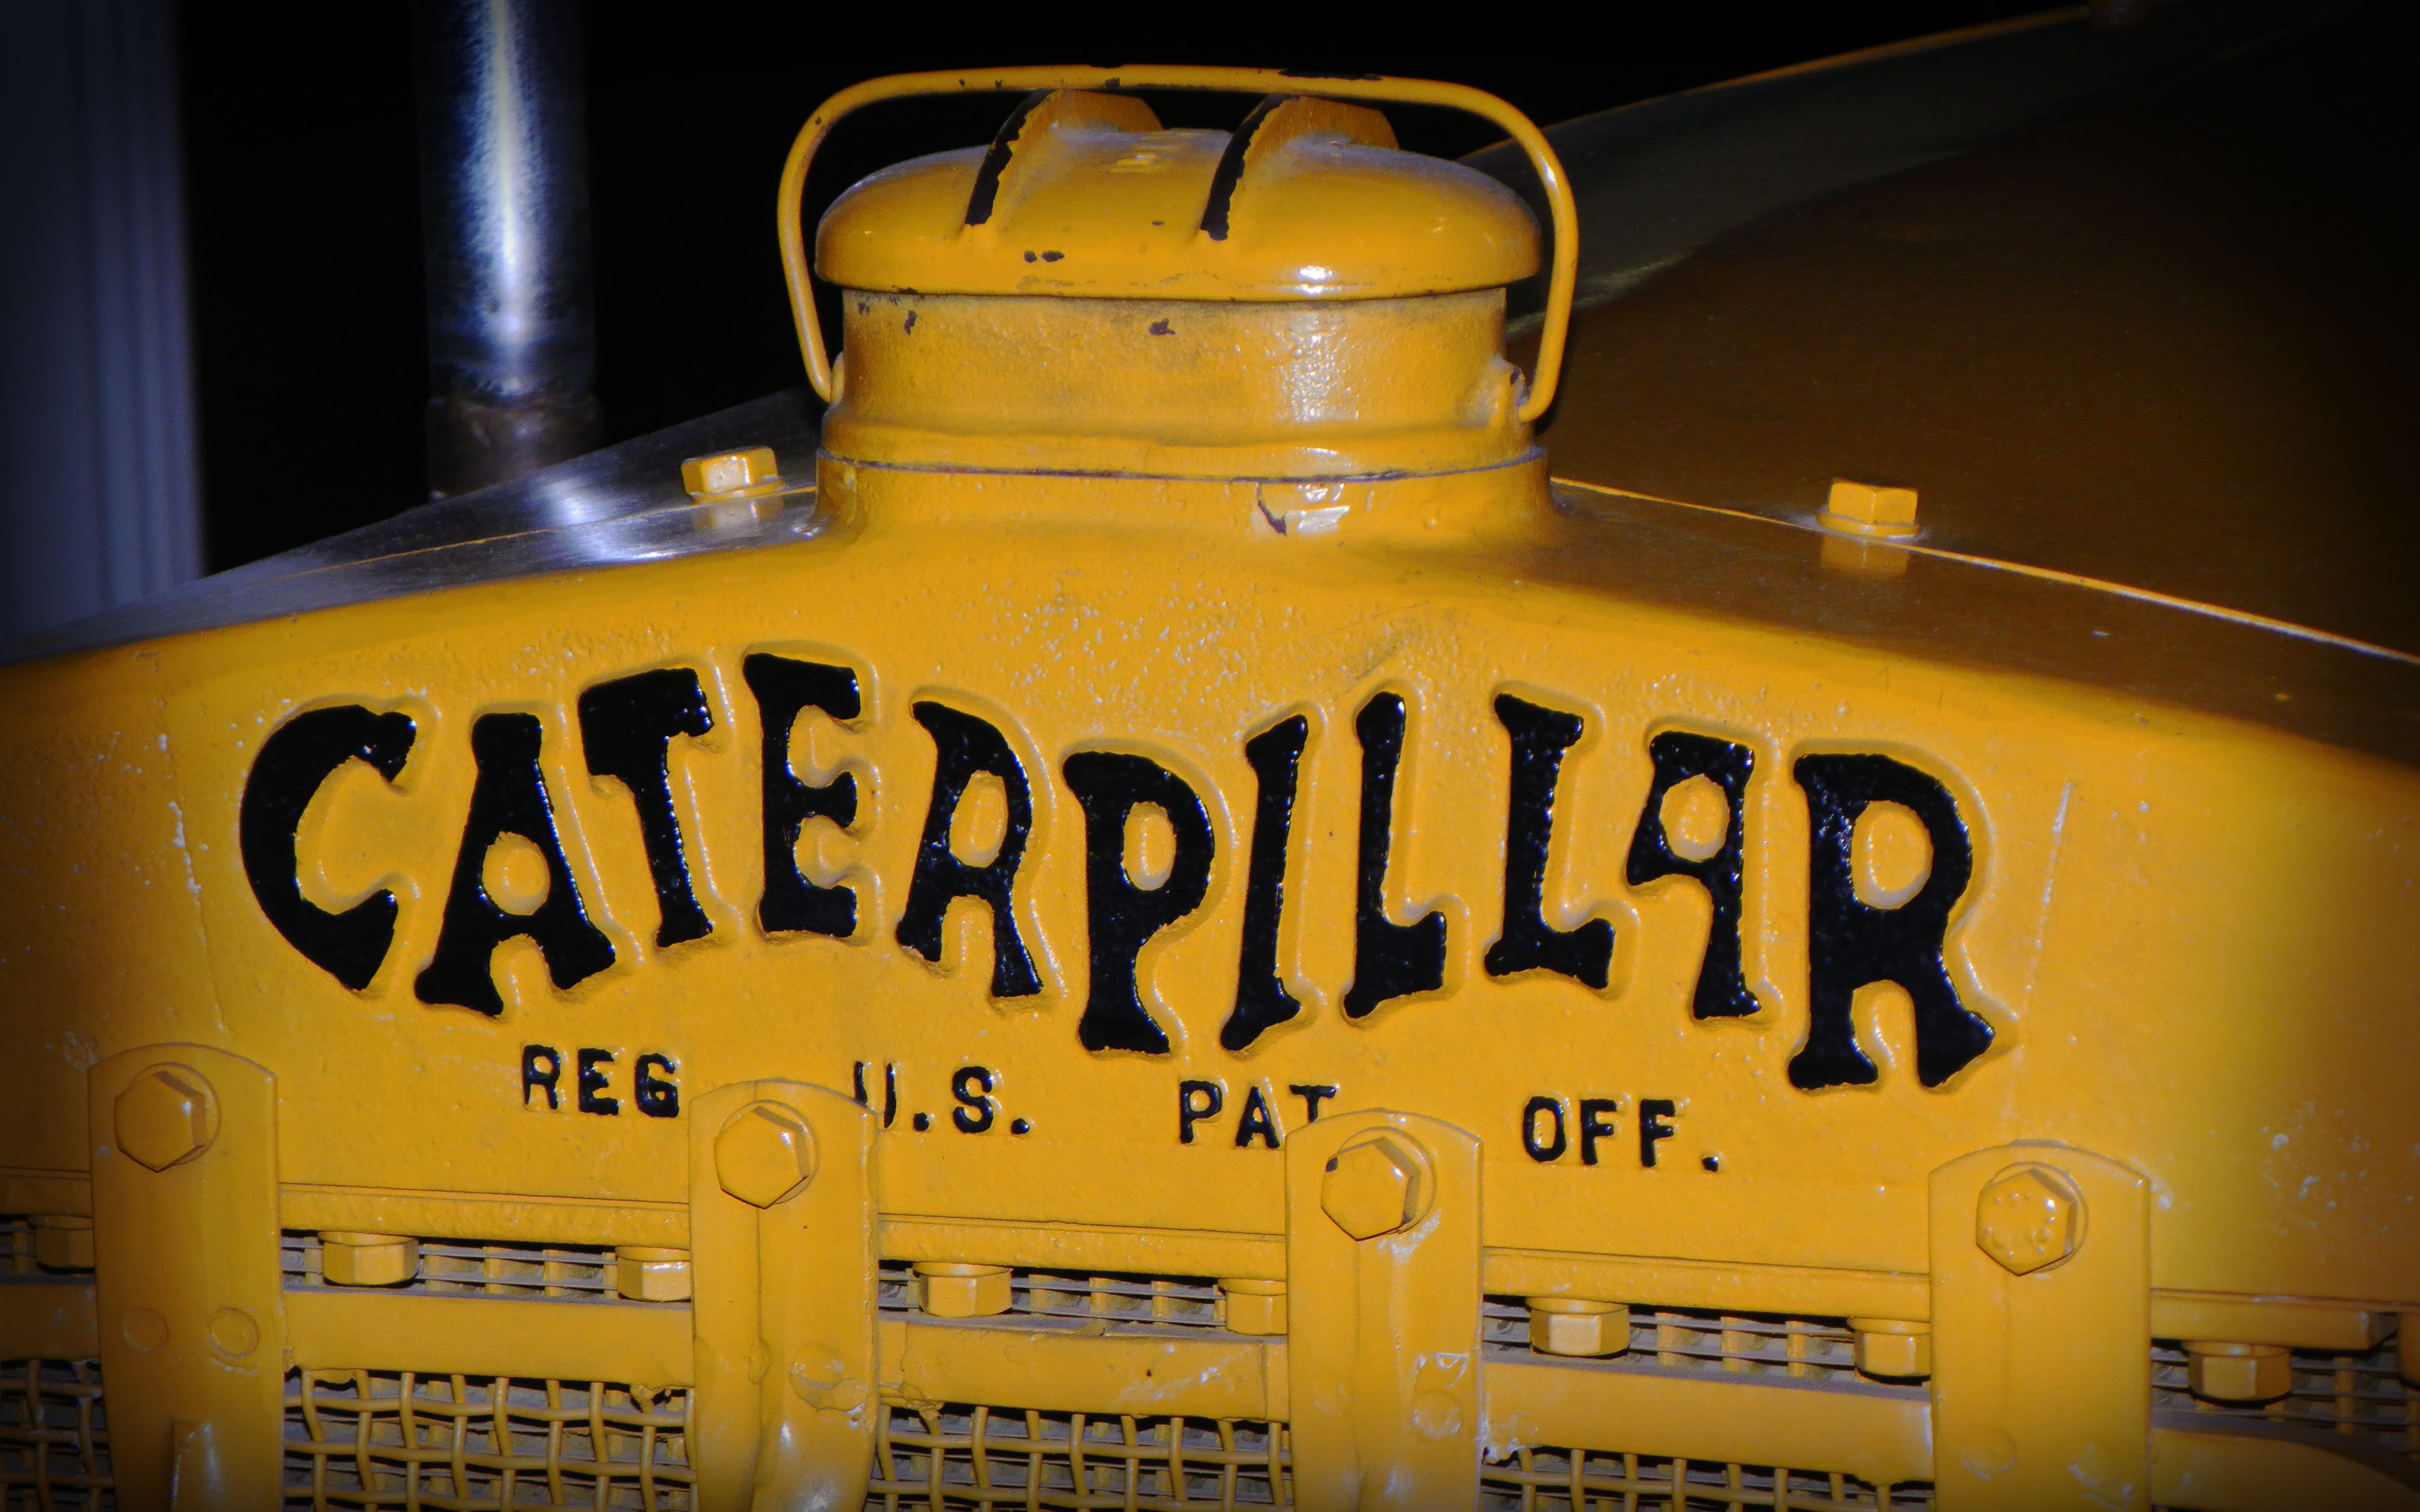 Caterpillar 4k ultra hd wallpaper and background image 4160x2600 id 115677 - Background images 4k hd ...